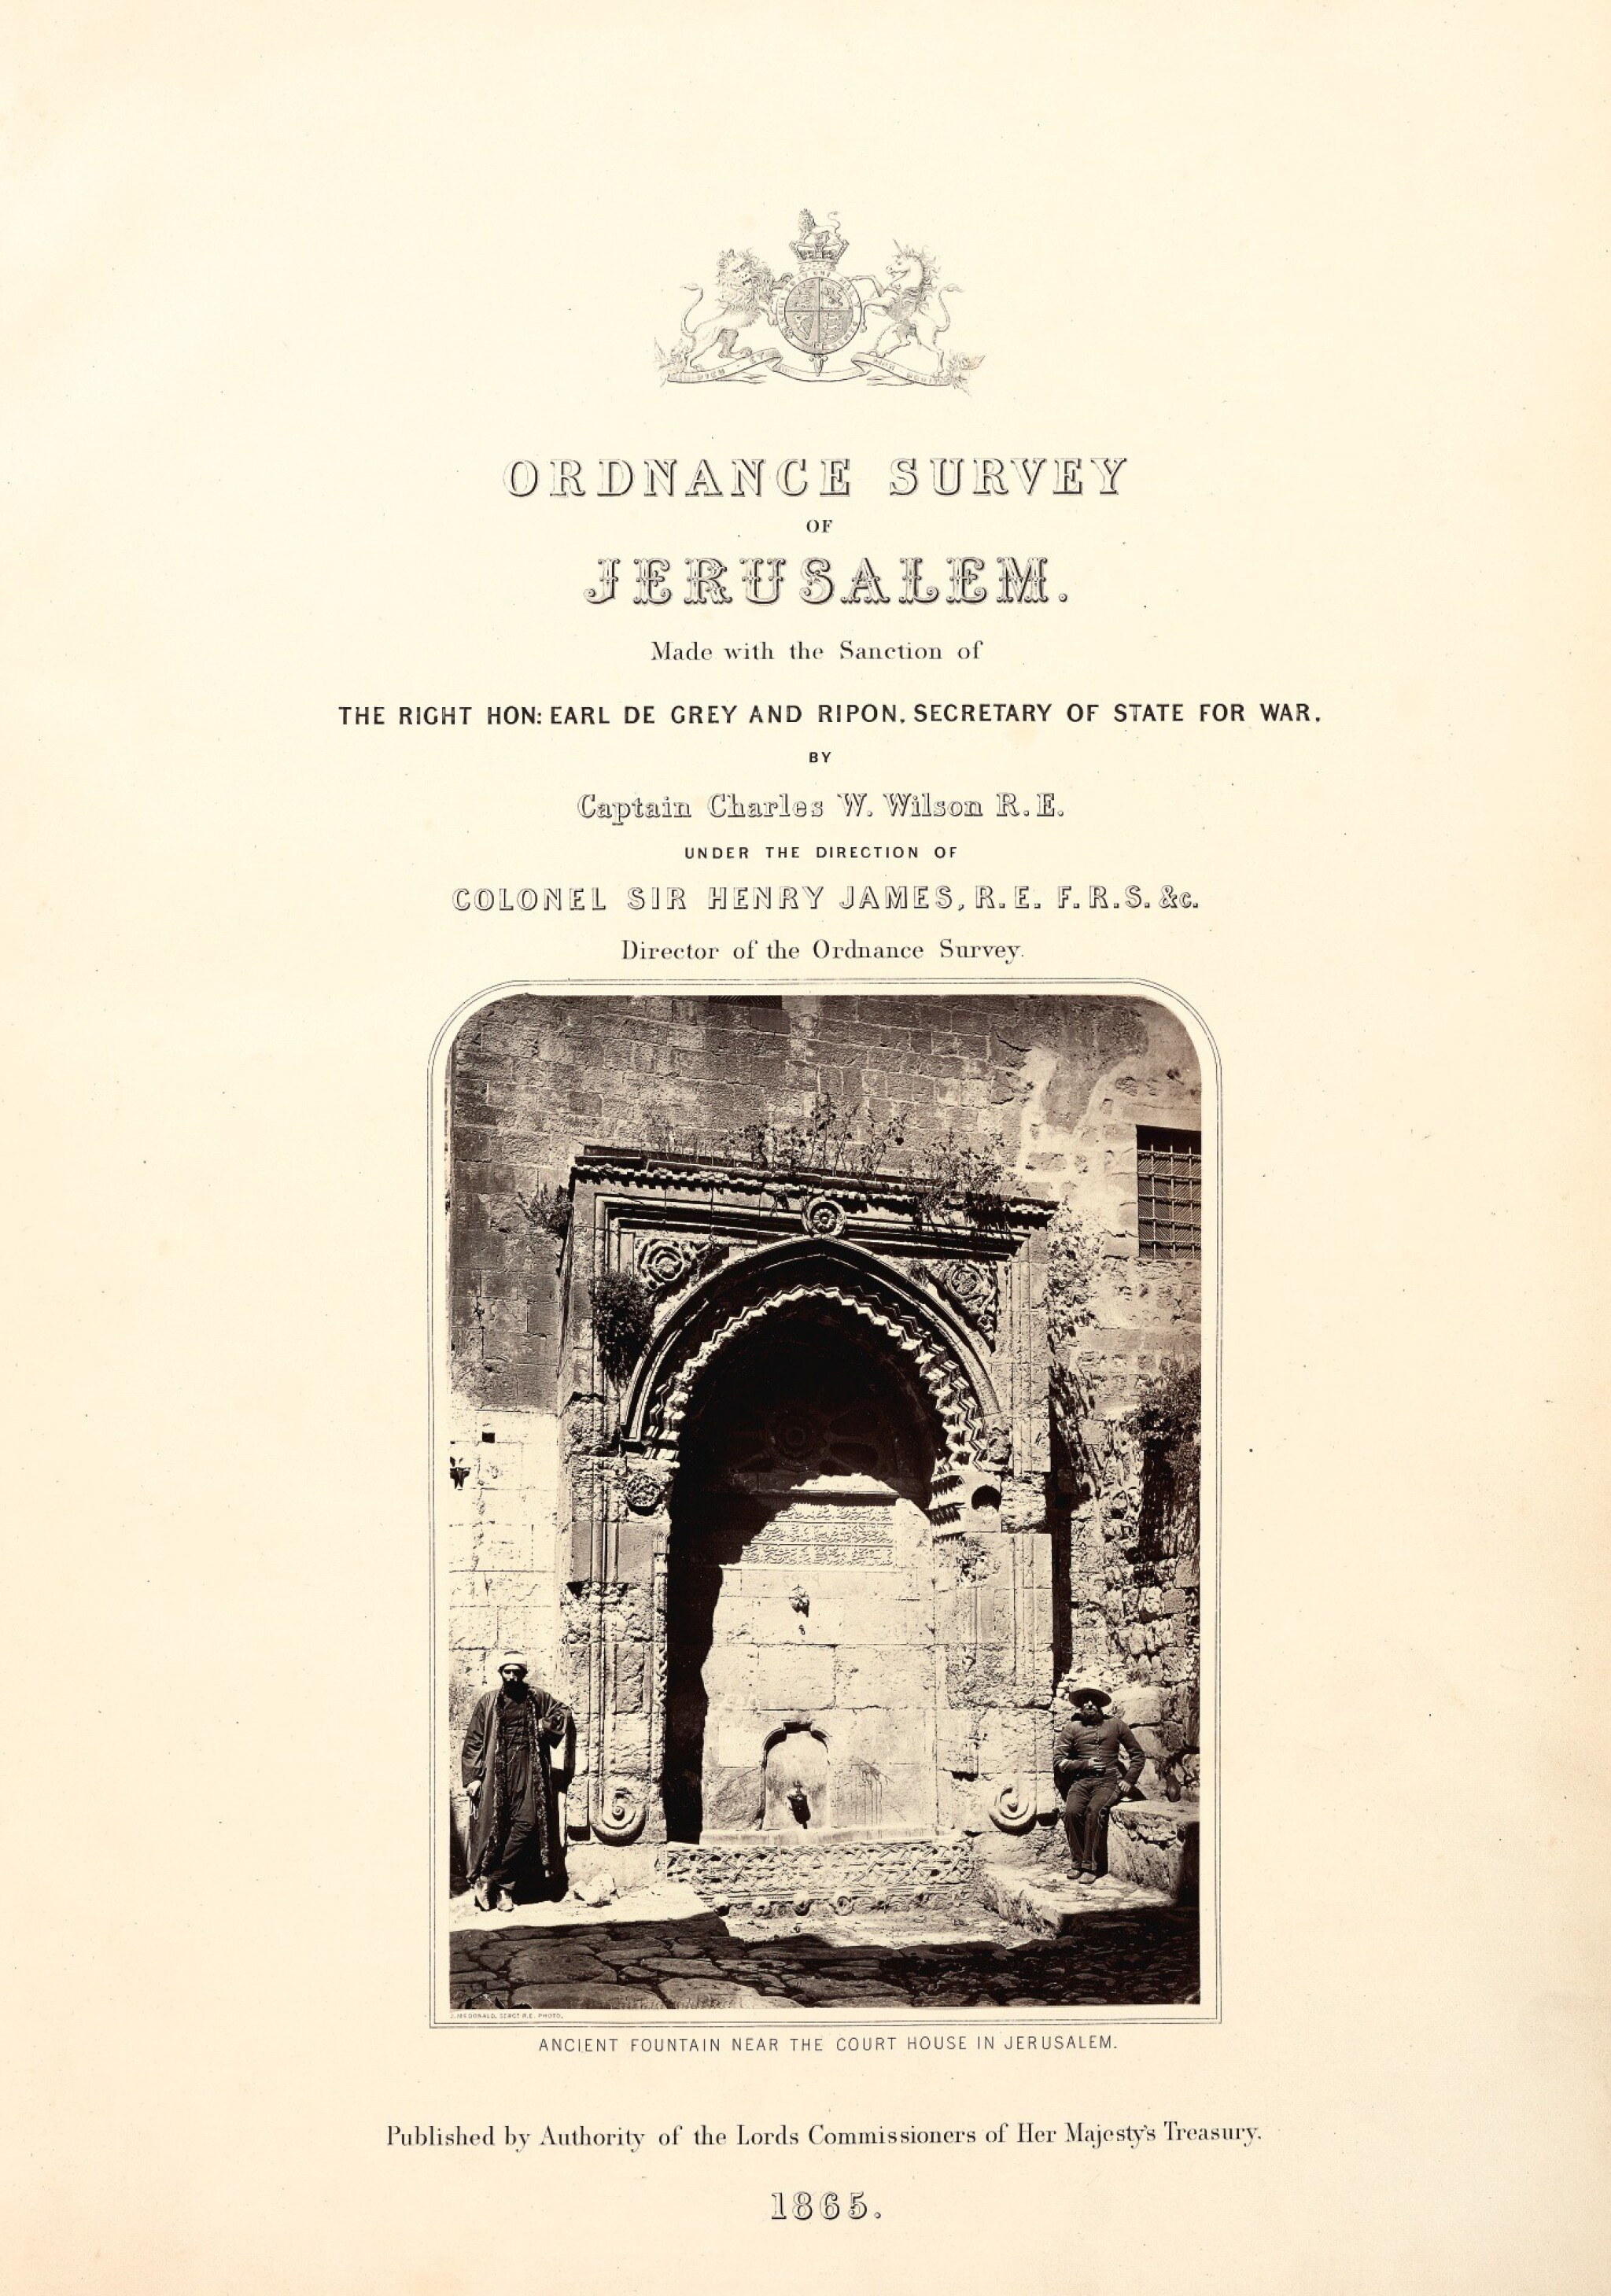 Wilson. Ordnance Survey of Jerusalem.1865, 3 volumes, folio